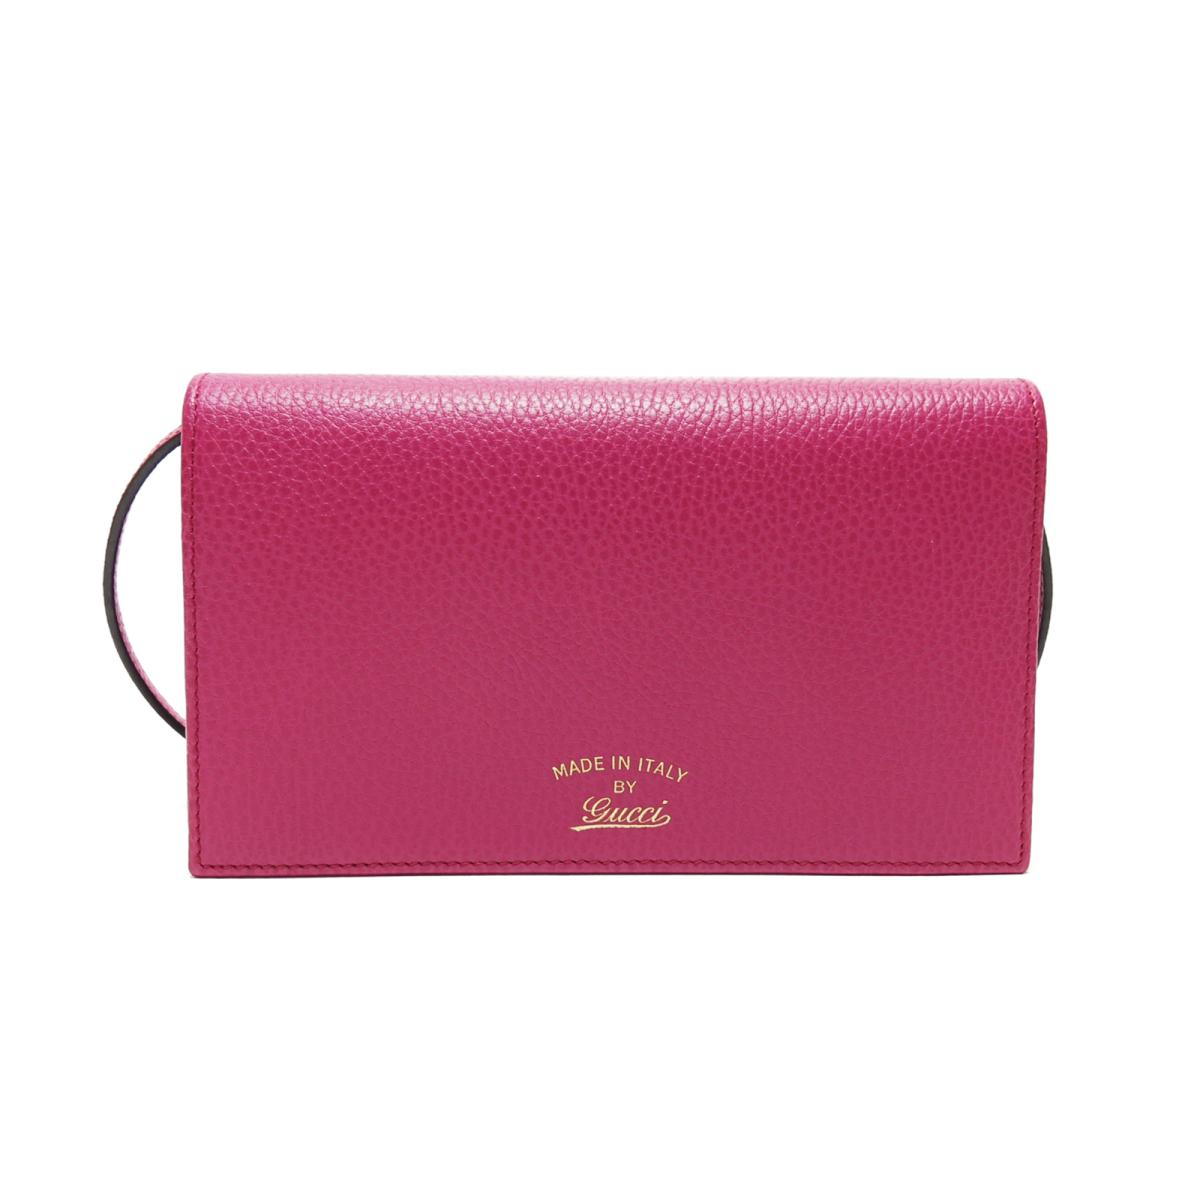 314c1a406a30 GUCCI Swing Crossbody Clutch Bag Wallet Purse Pink Leather 368231  http   bit.